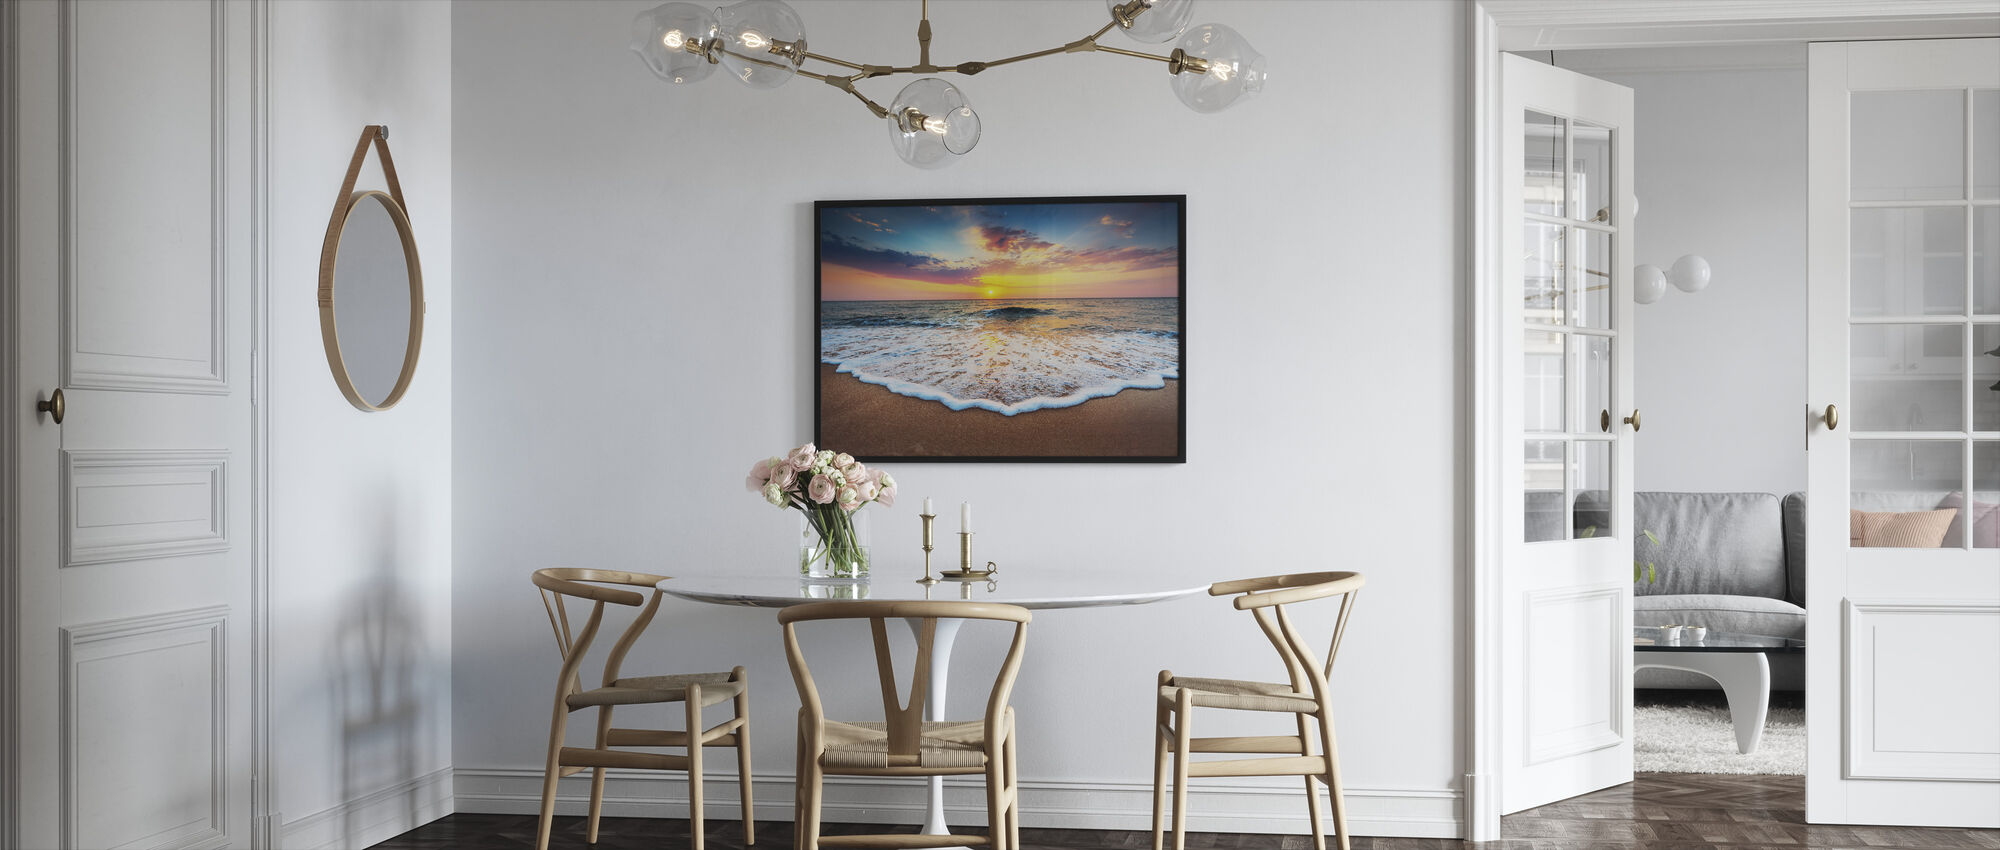 Sunrise and Dreams - Framed print - Kitchen